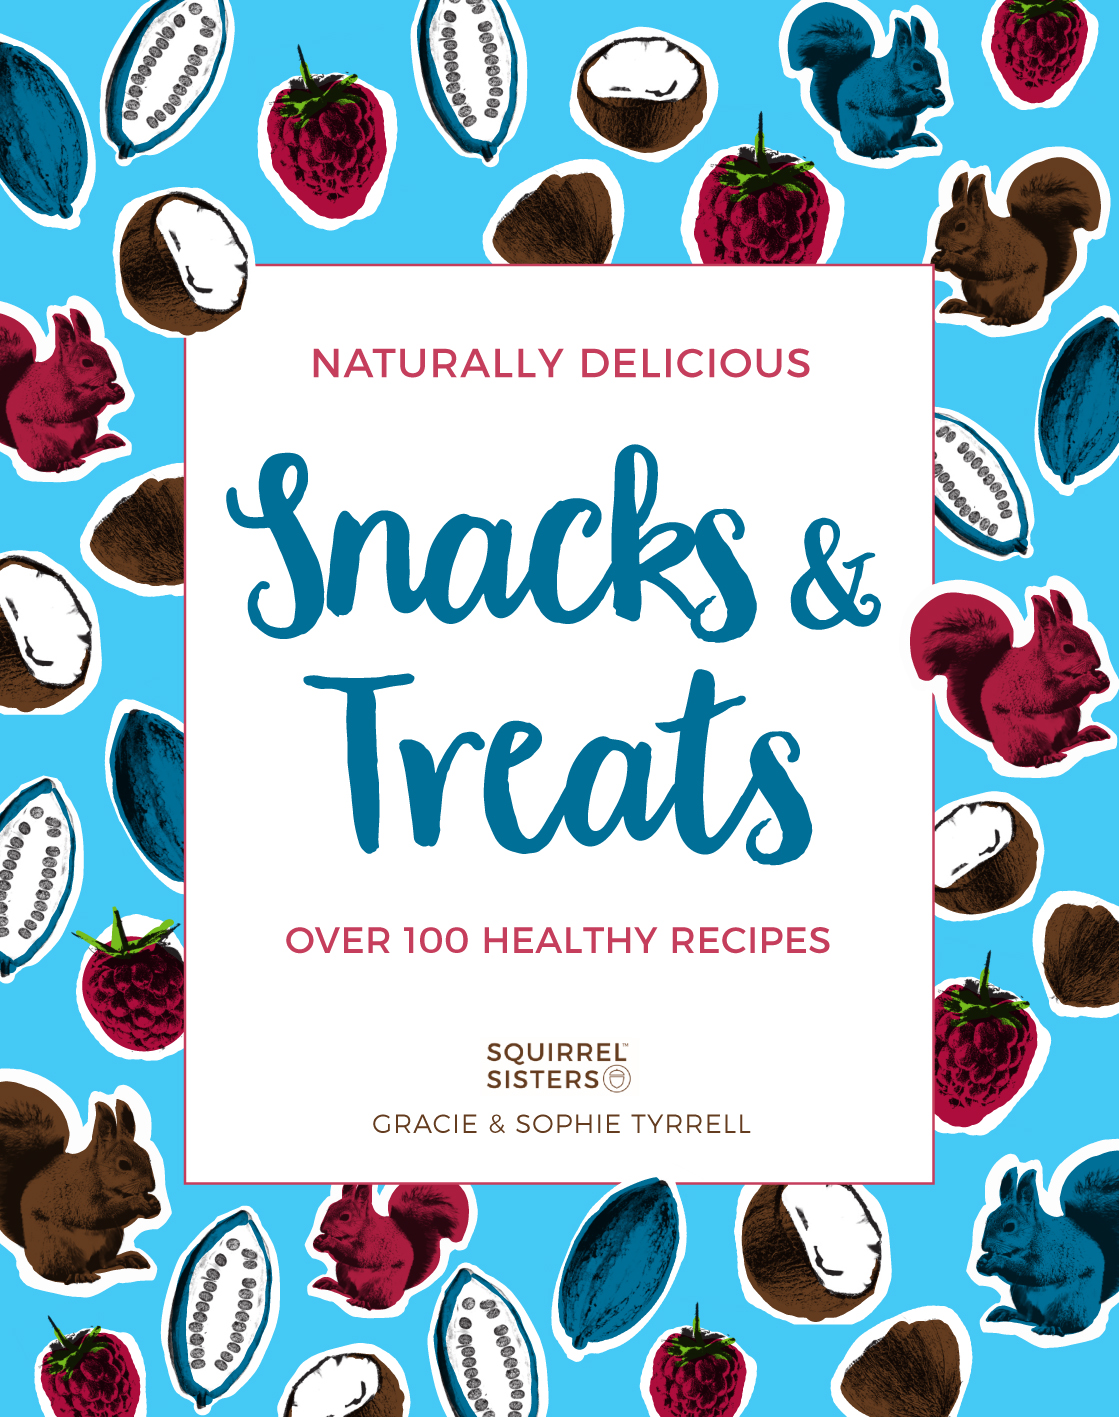 Naturally Delicious Snacks & Treats